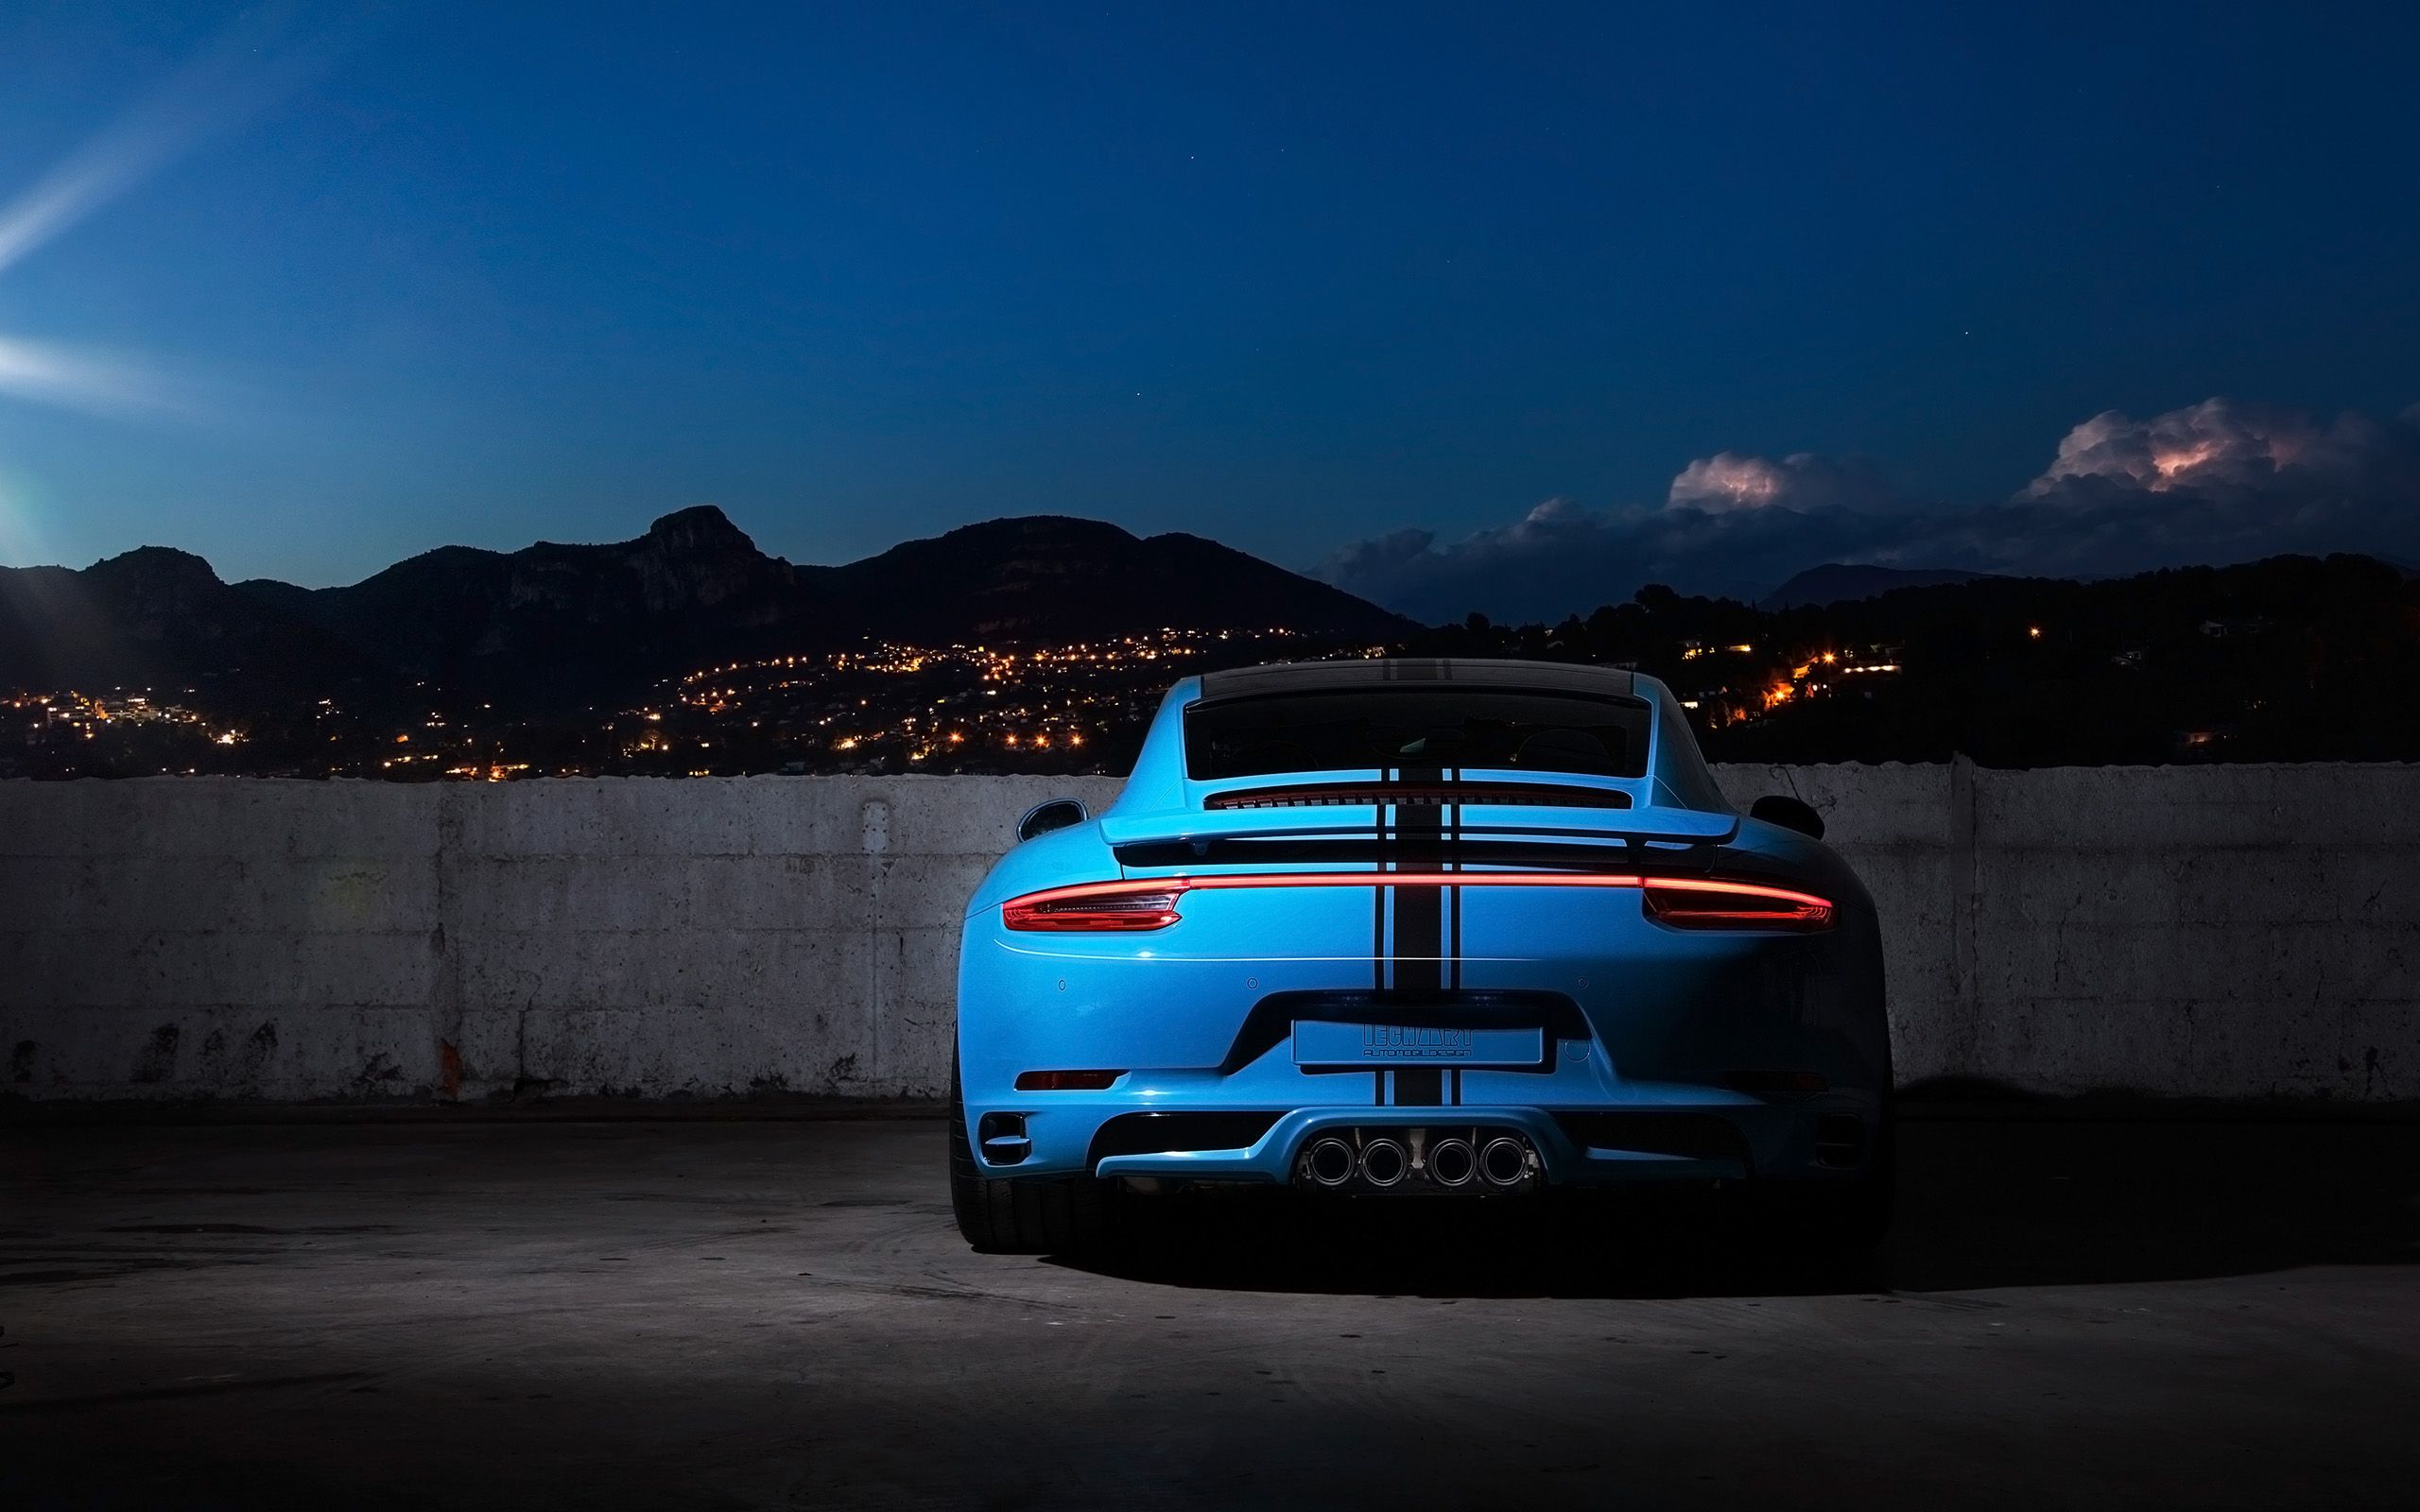 porsche desktop wallpaper hd